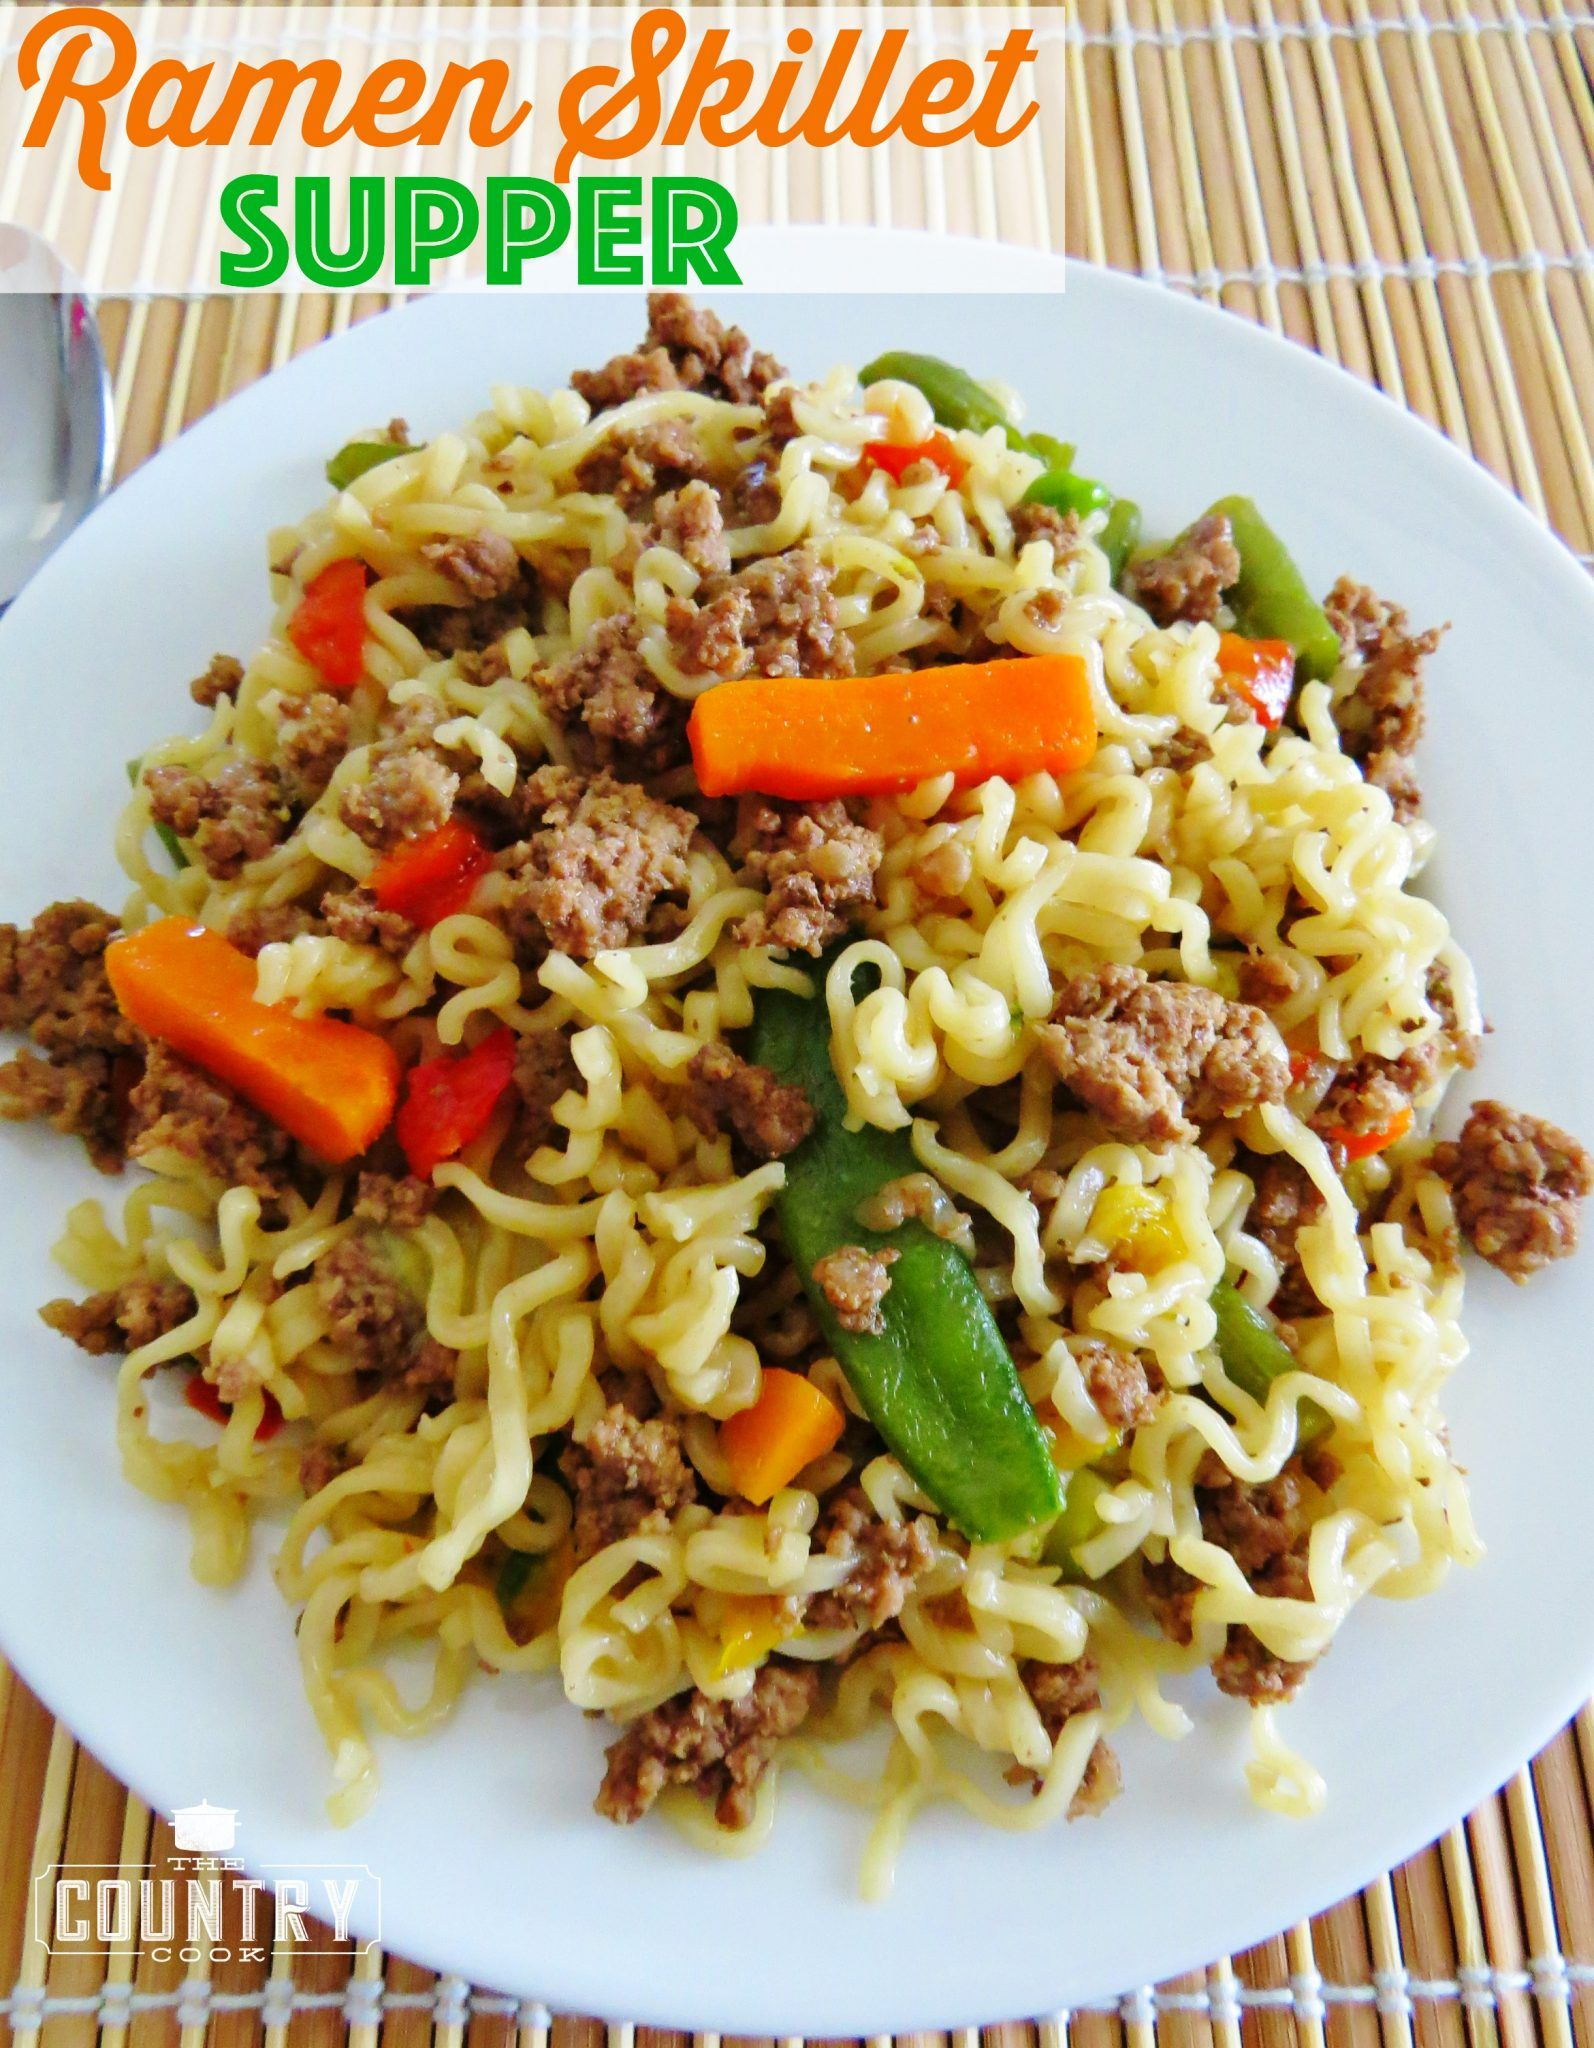 Ramen Skillet Supper Easy Ramen Recipes Country Cooking